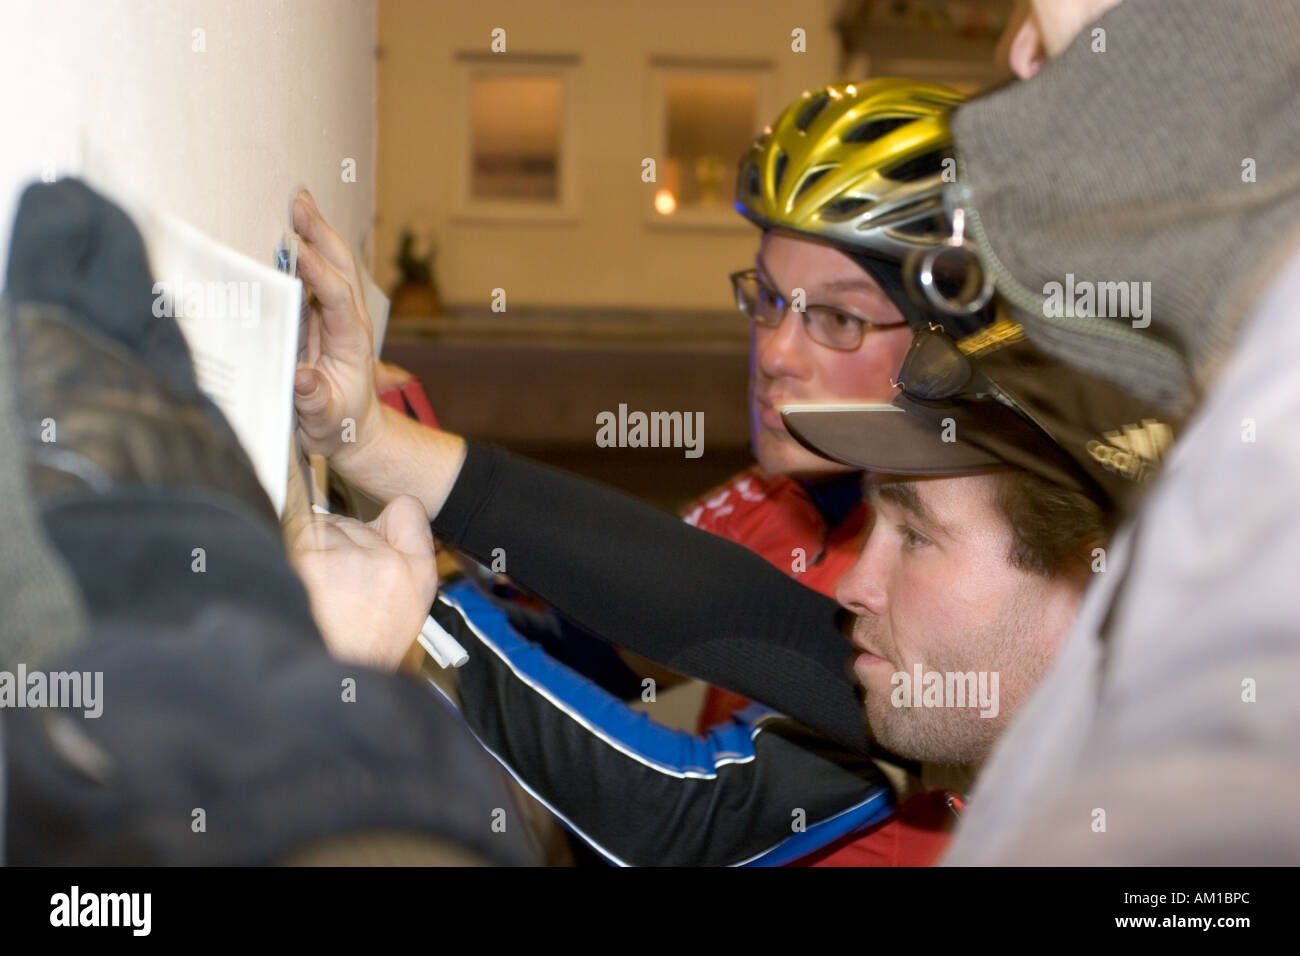 night race of bicycle messengers in Germany Bavaria Munich drivers discussing task - Stock Image